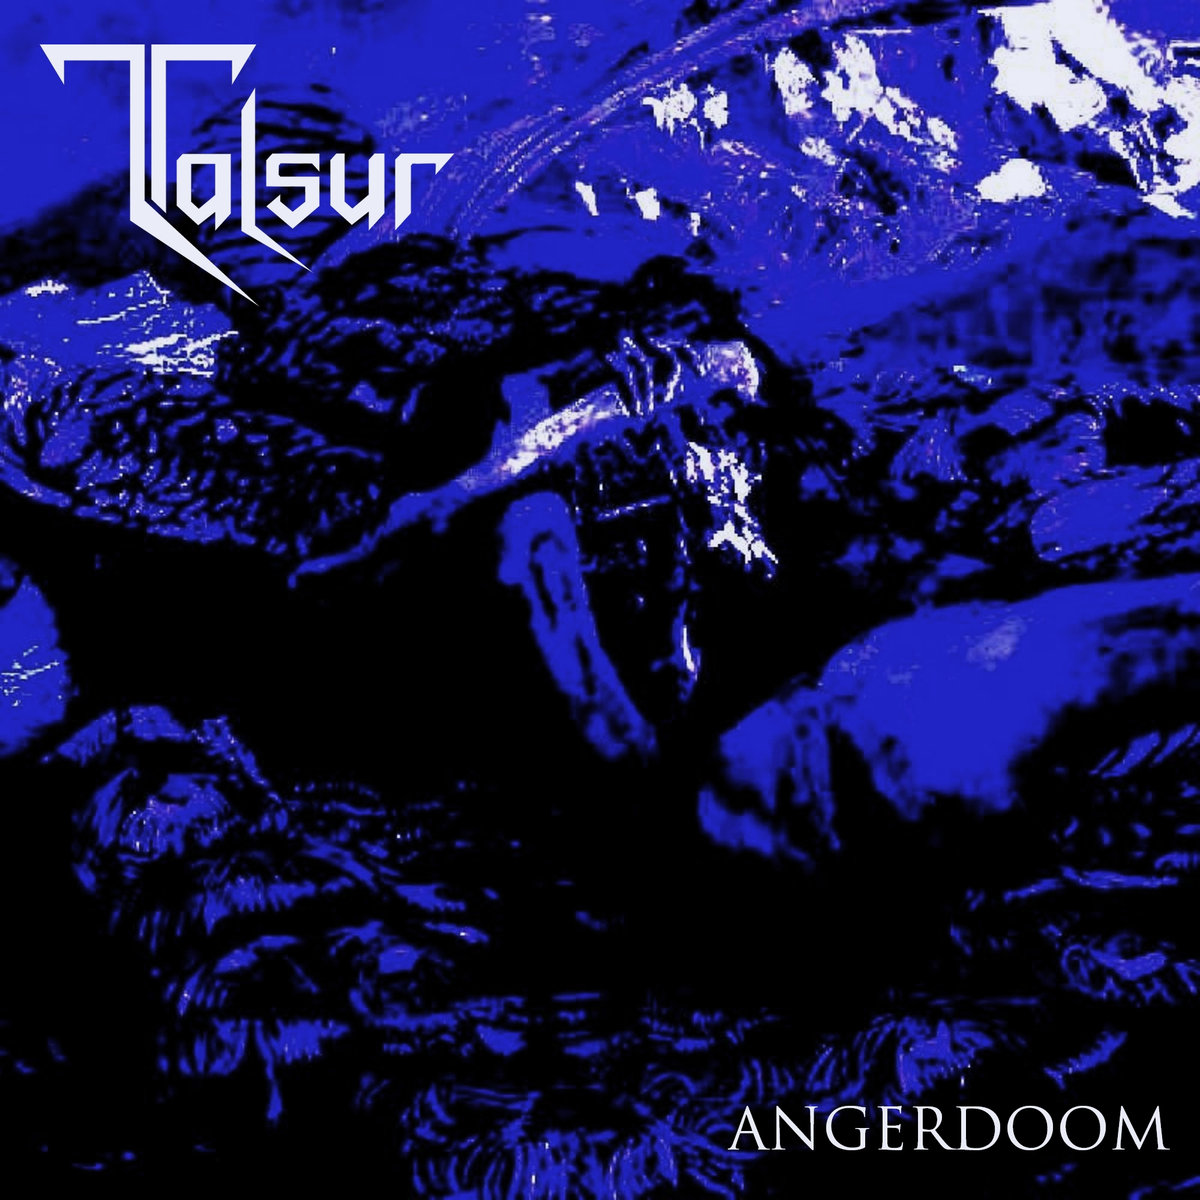 Talsur - Funeral hymn wallowing